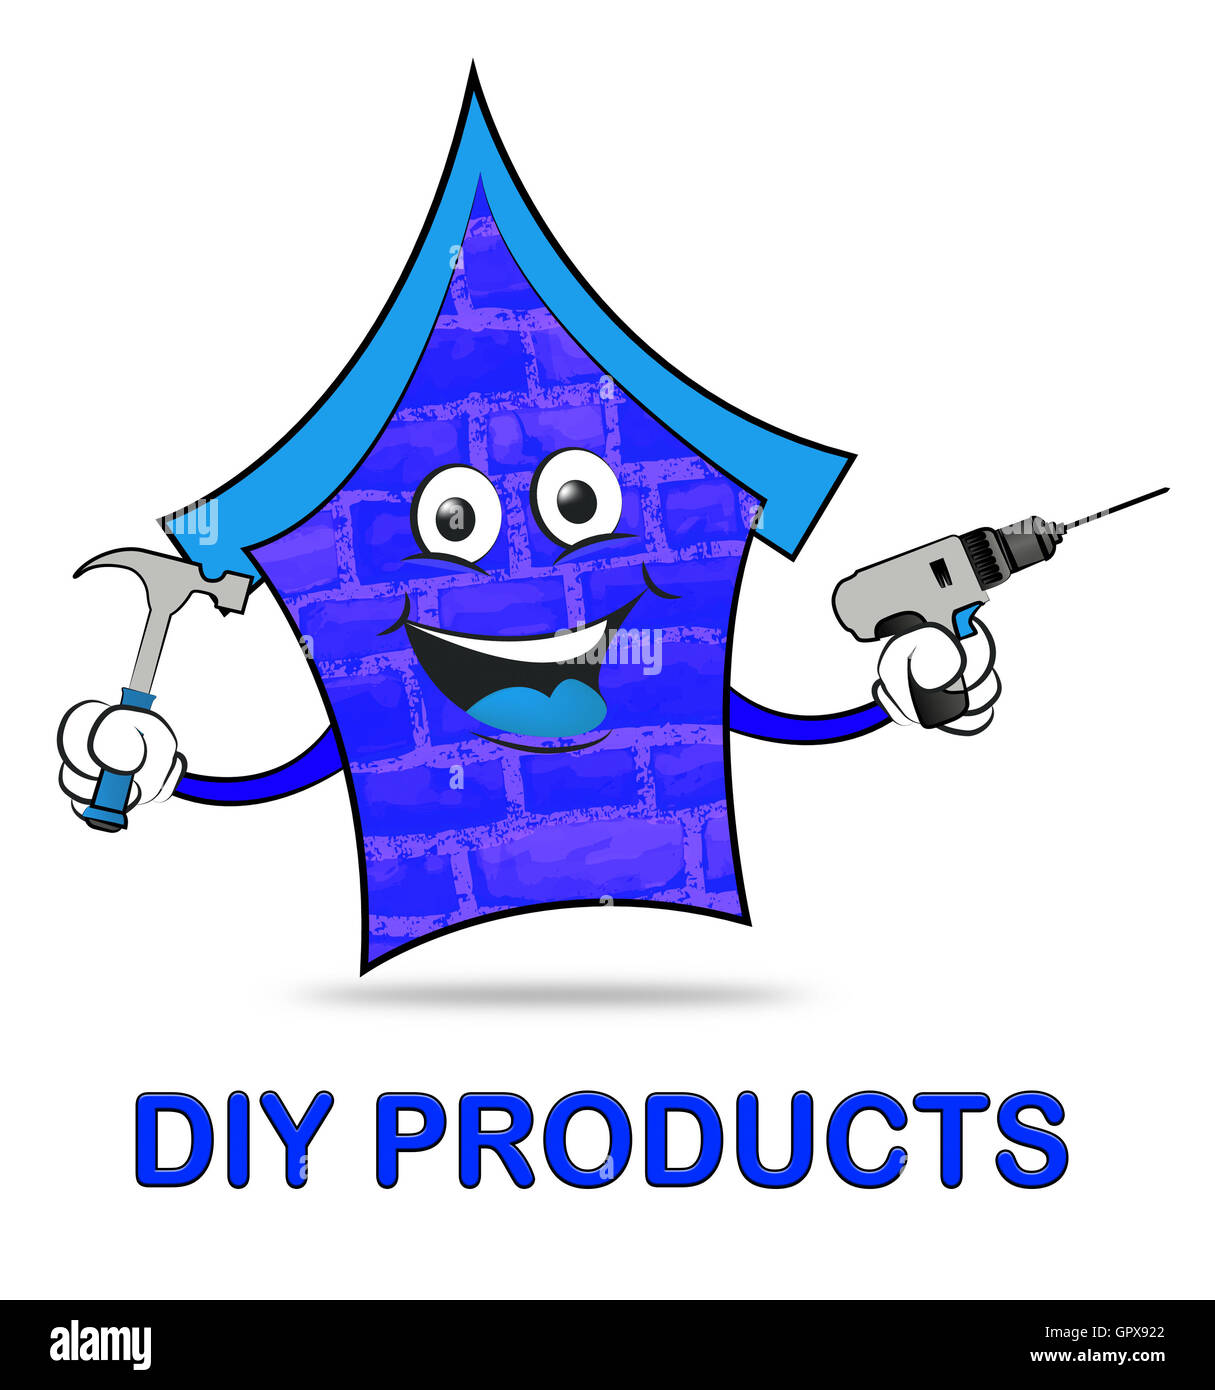 Diy products meaning do it yourself and real estate stock photo diy products meaning do it yourself and real estate solutioingenieria Image collections